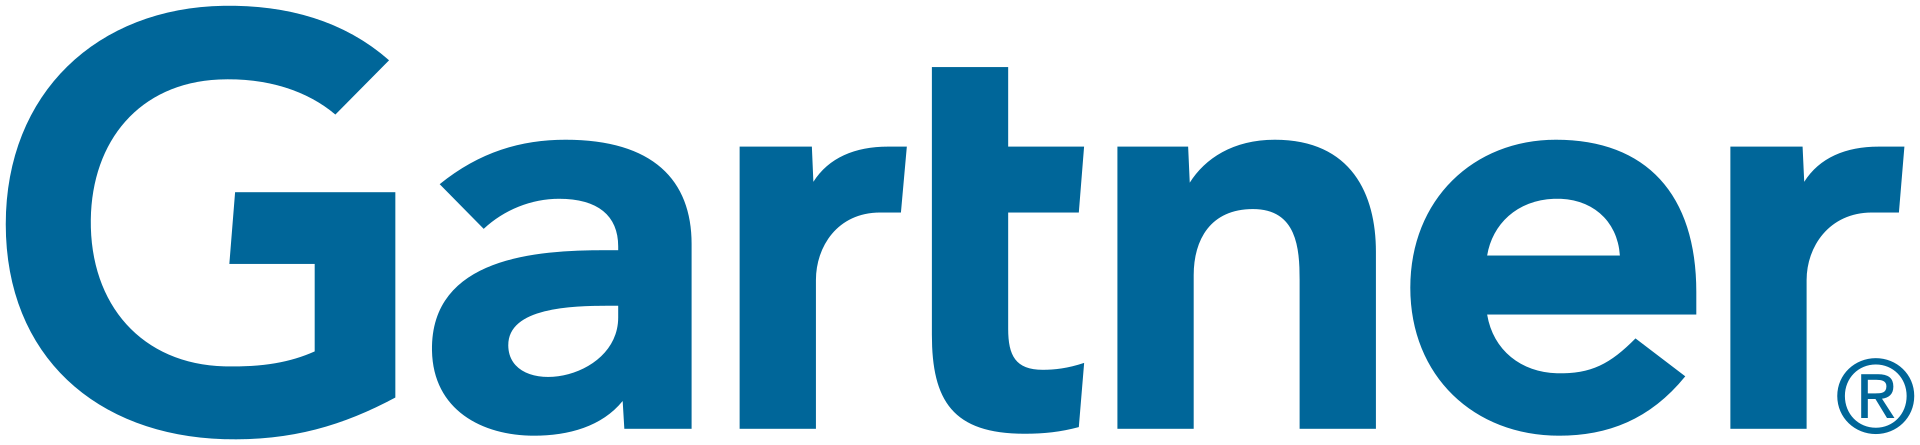 Gartner_logo.svg.png